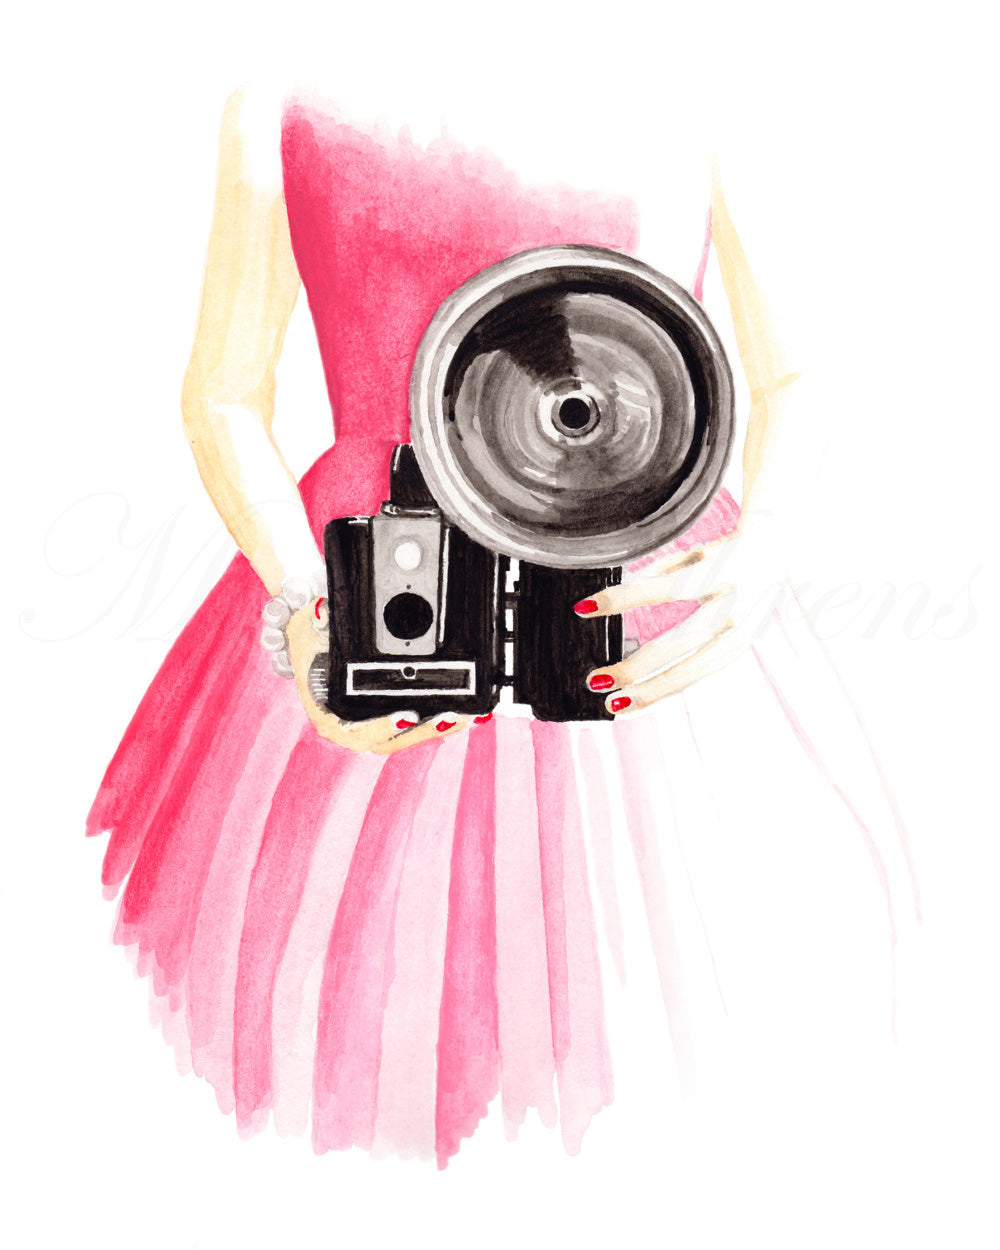 Vintage Camera Mini Fashion Illustration Art Print artwork by Maria Ahrens